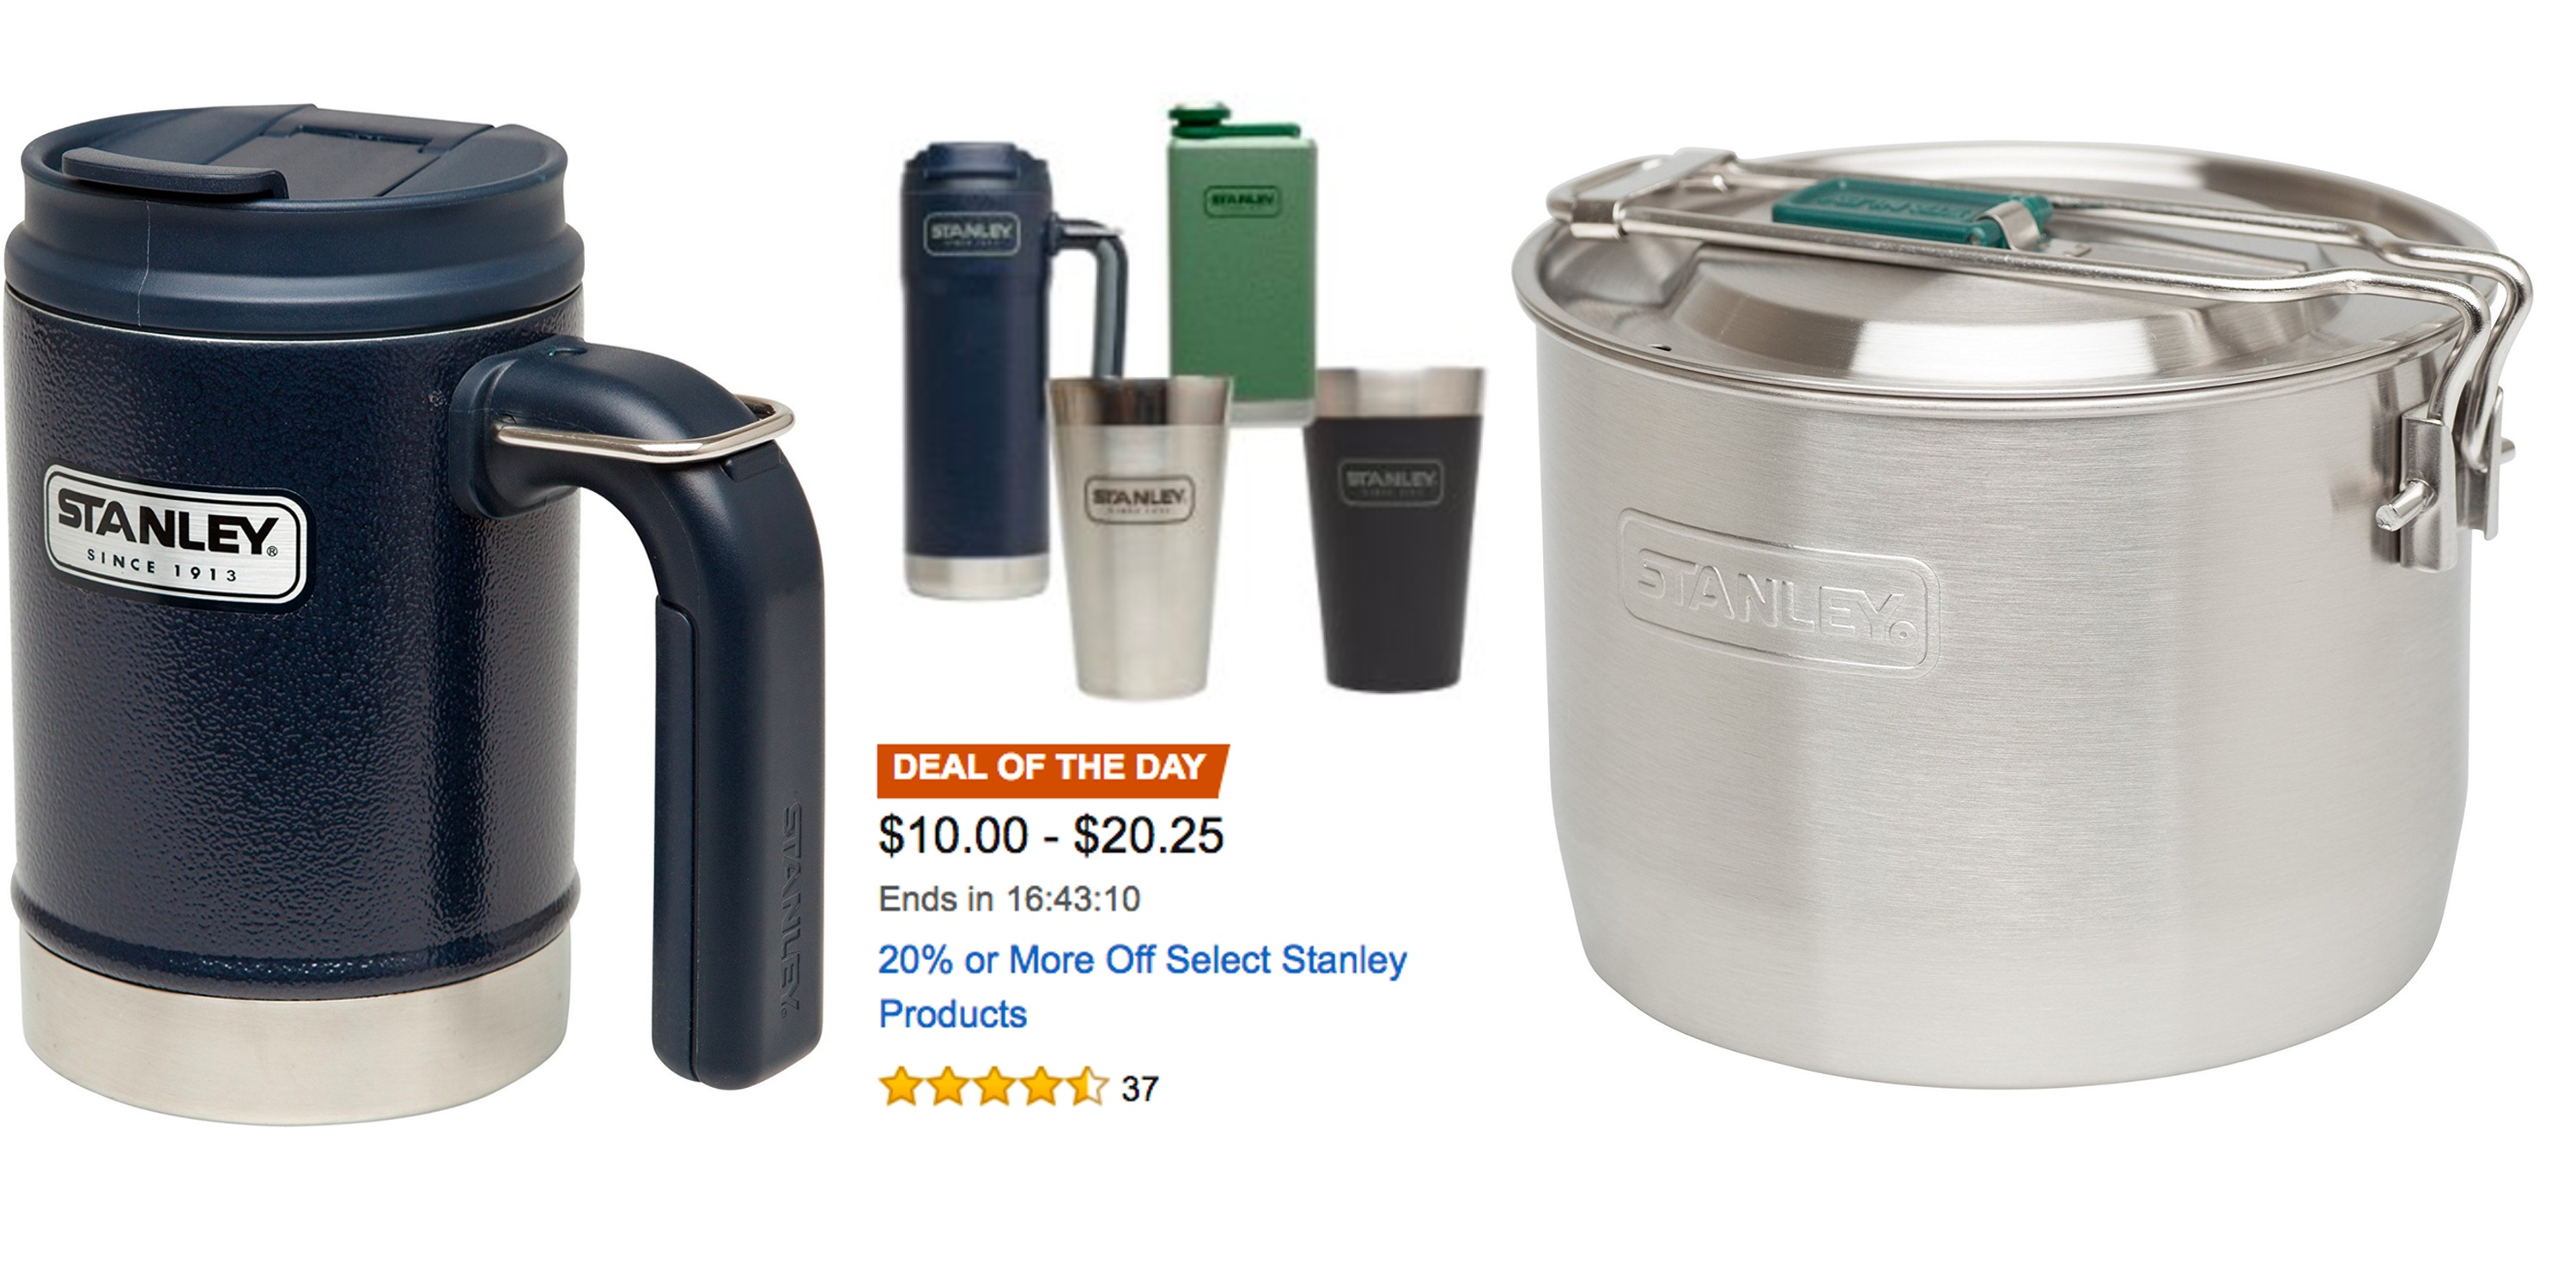 stanley-camping-sale-discount